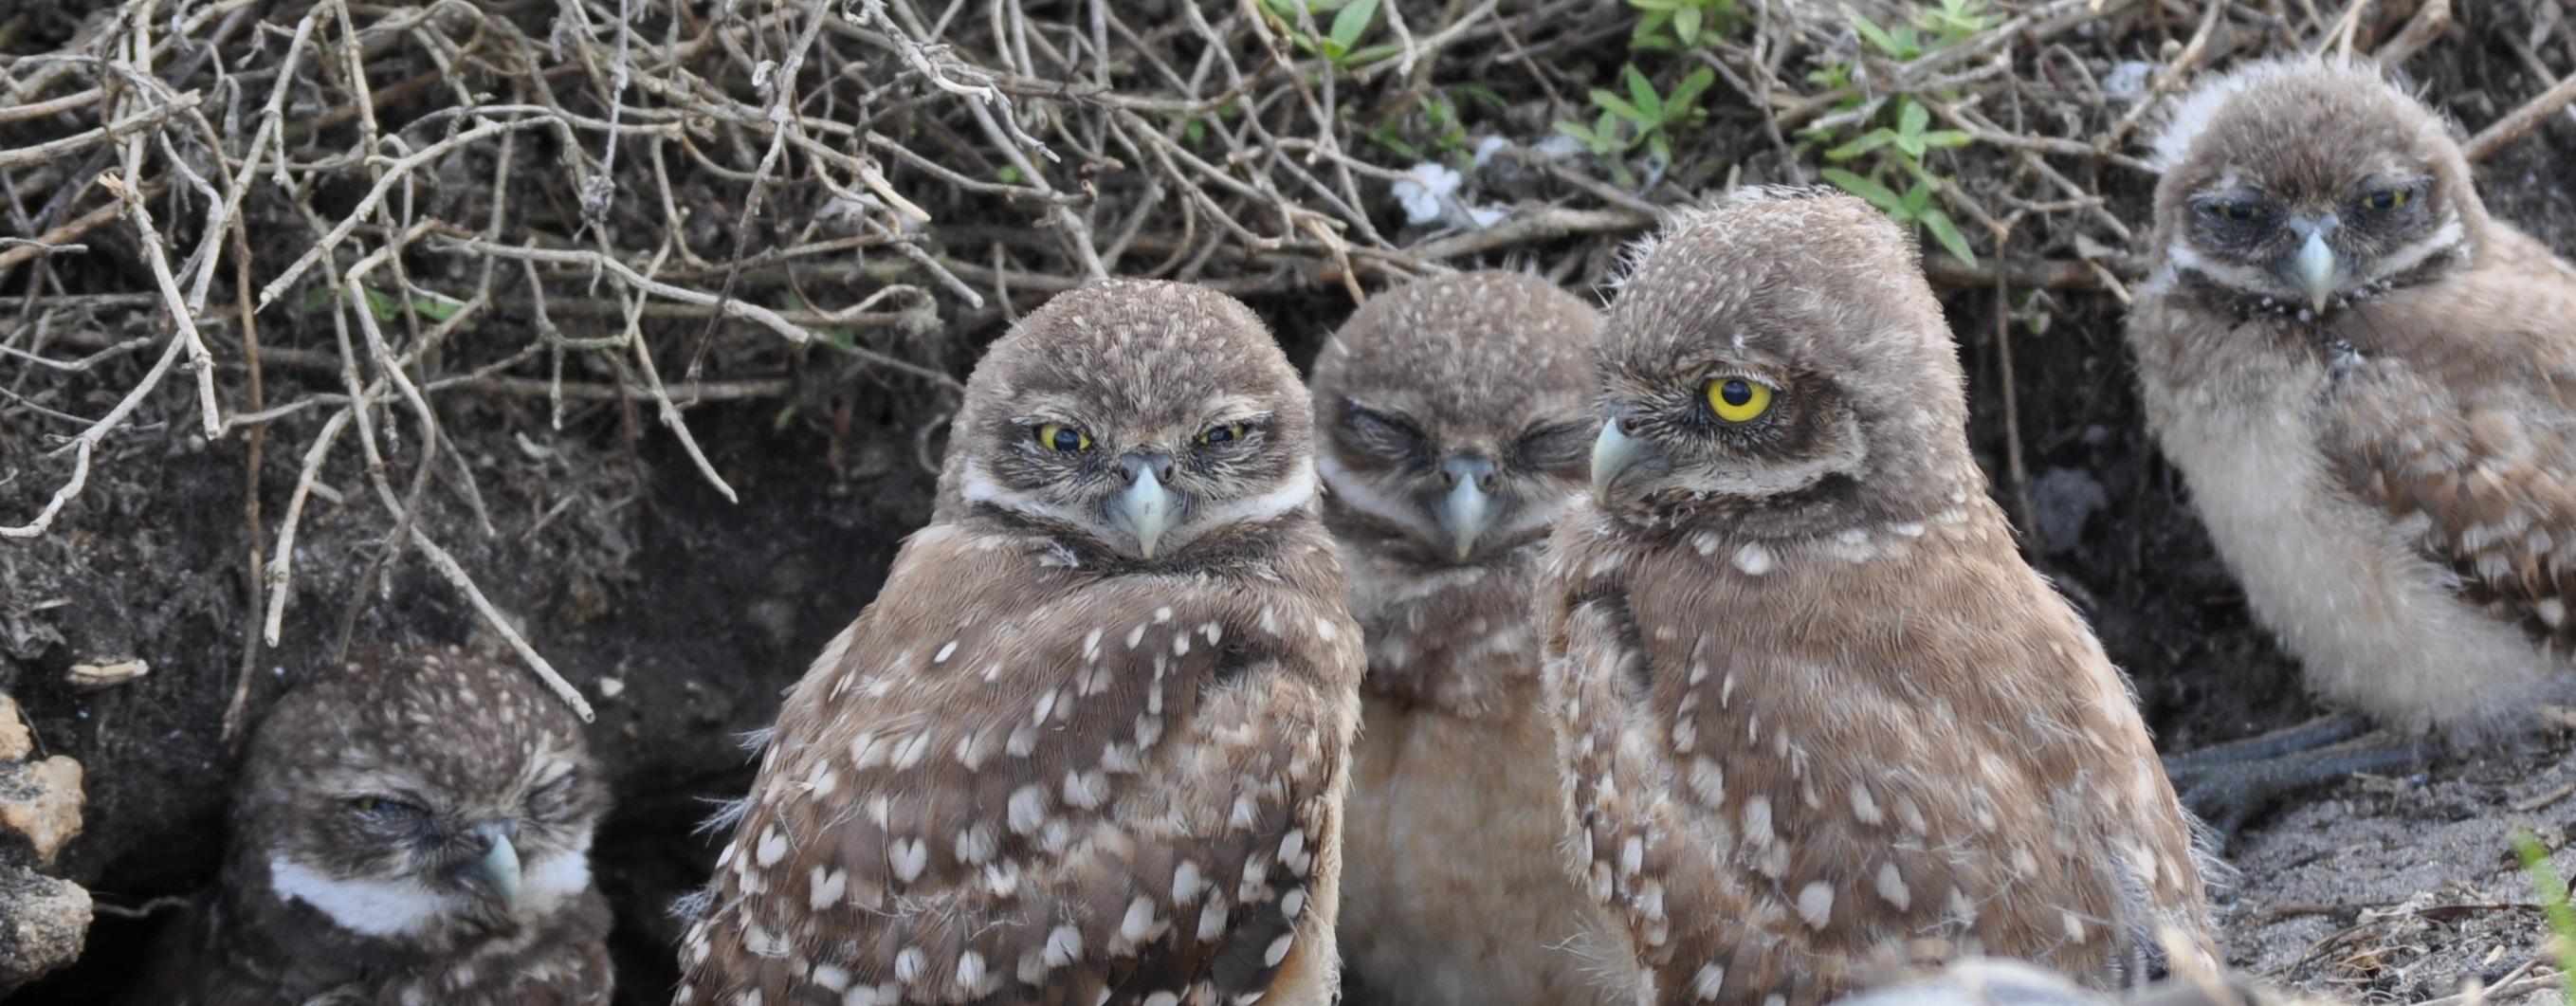 5 Juvenile Burrowing Owls